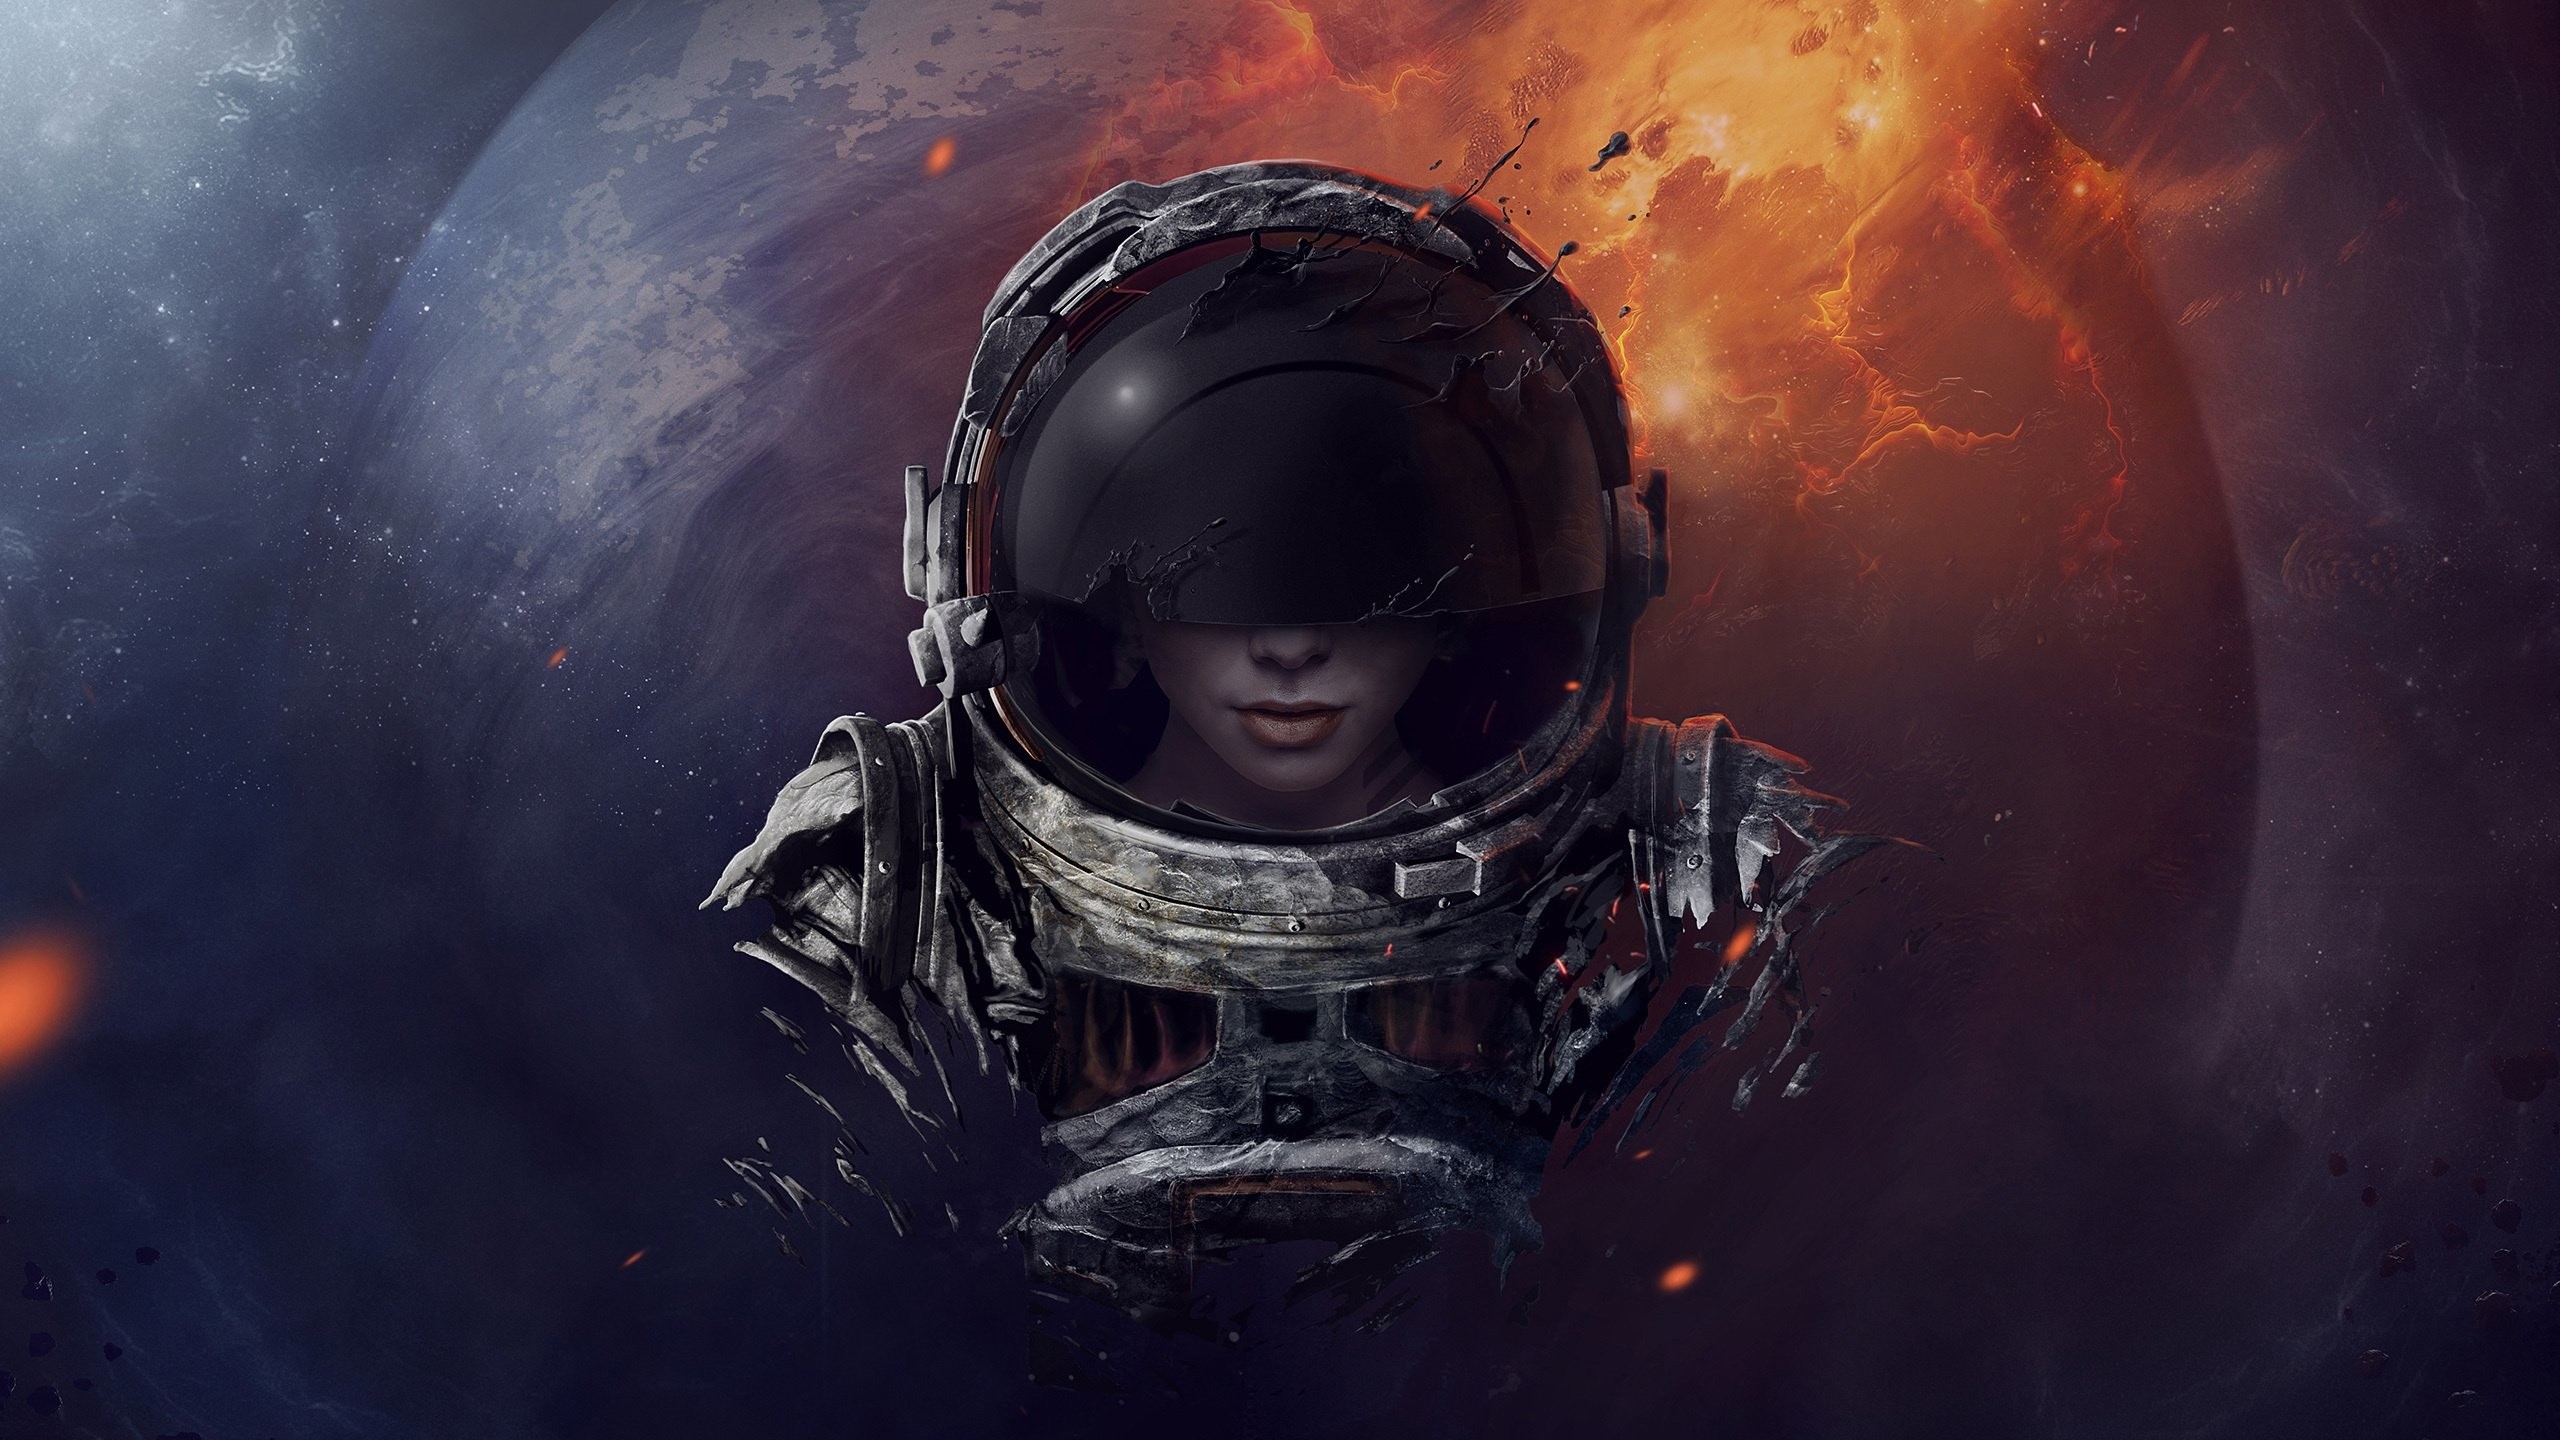 Res: 2560x1440, Astronaut Wallpaper Images For Desktop Wallpaper 2560 x 1440 px 1.08 MB  1920x1080 awesome earth moon